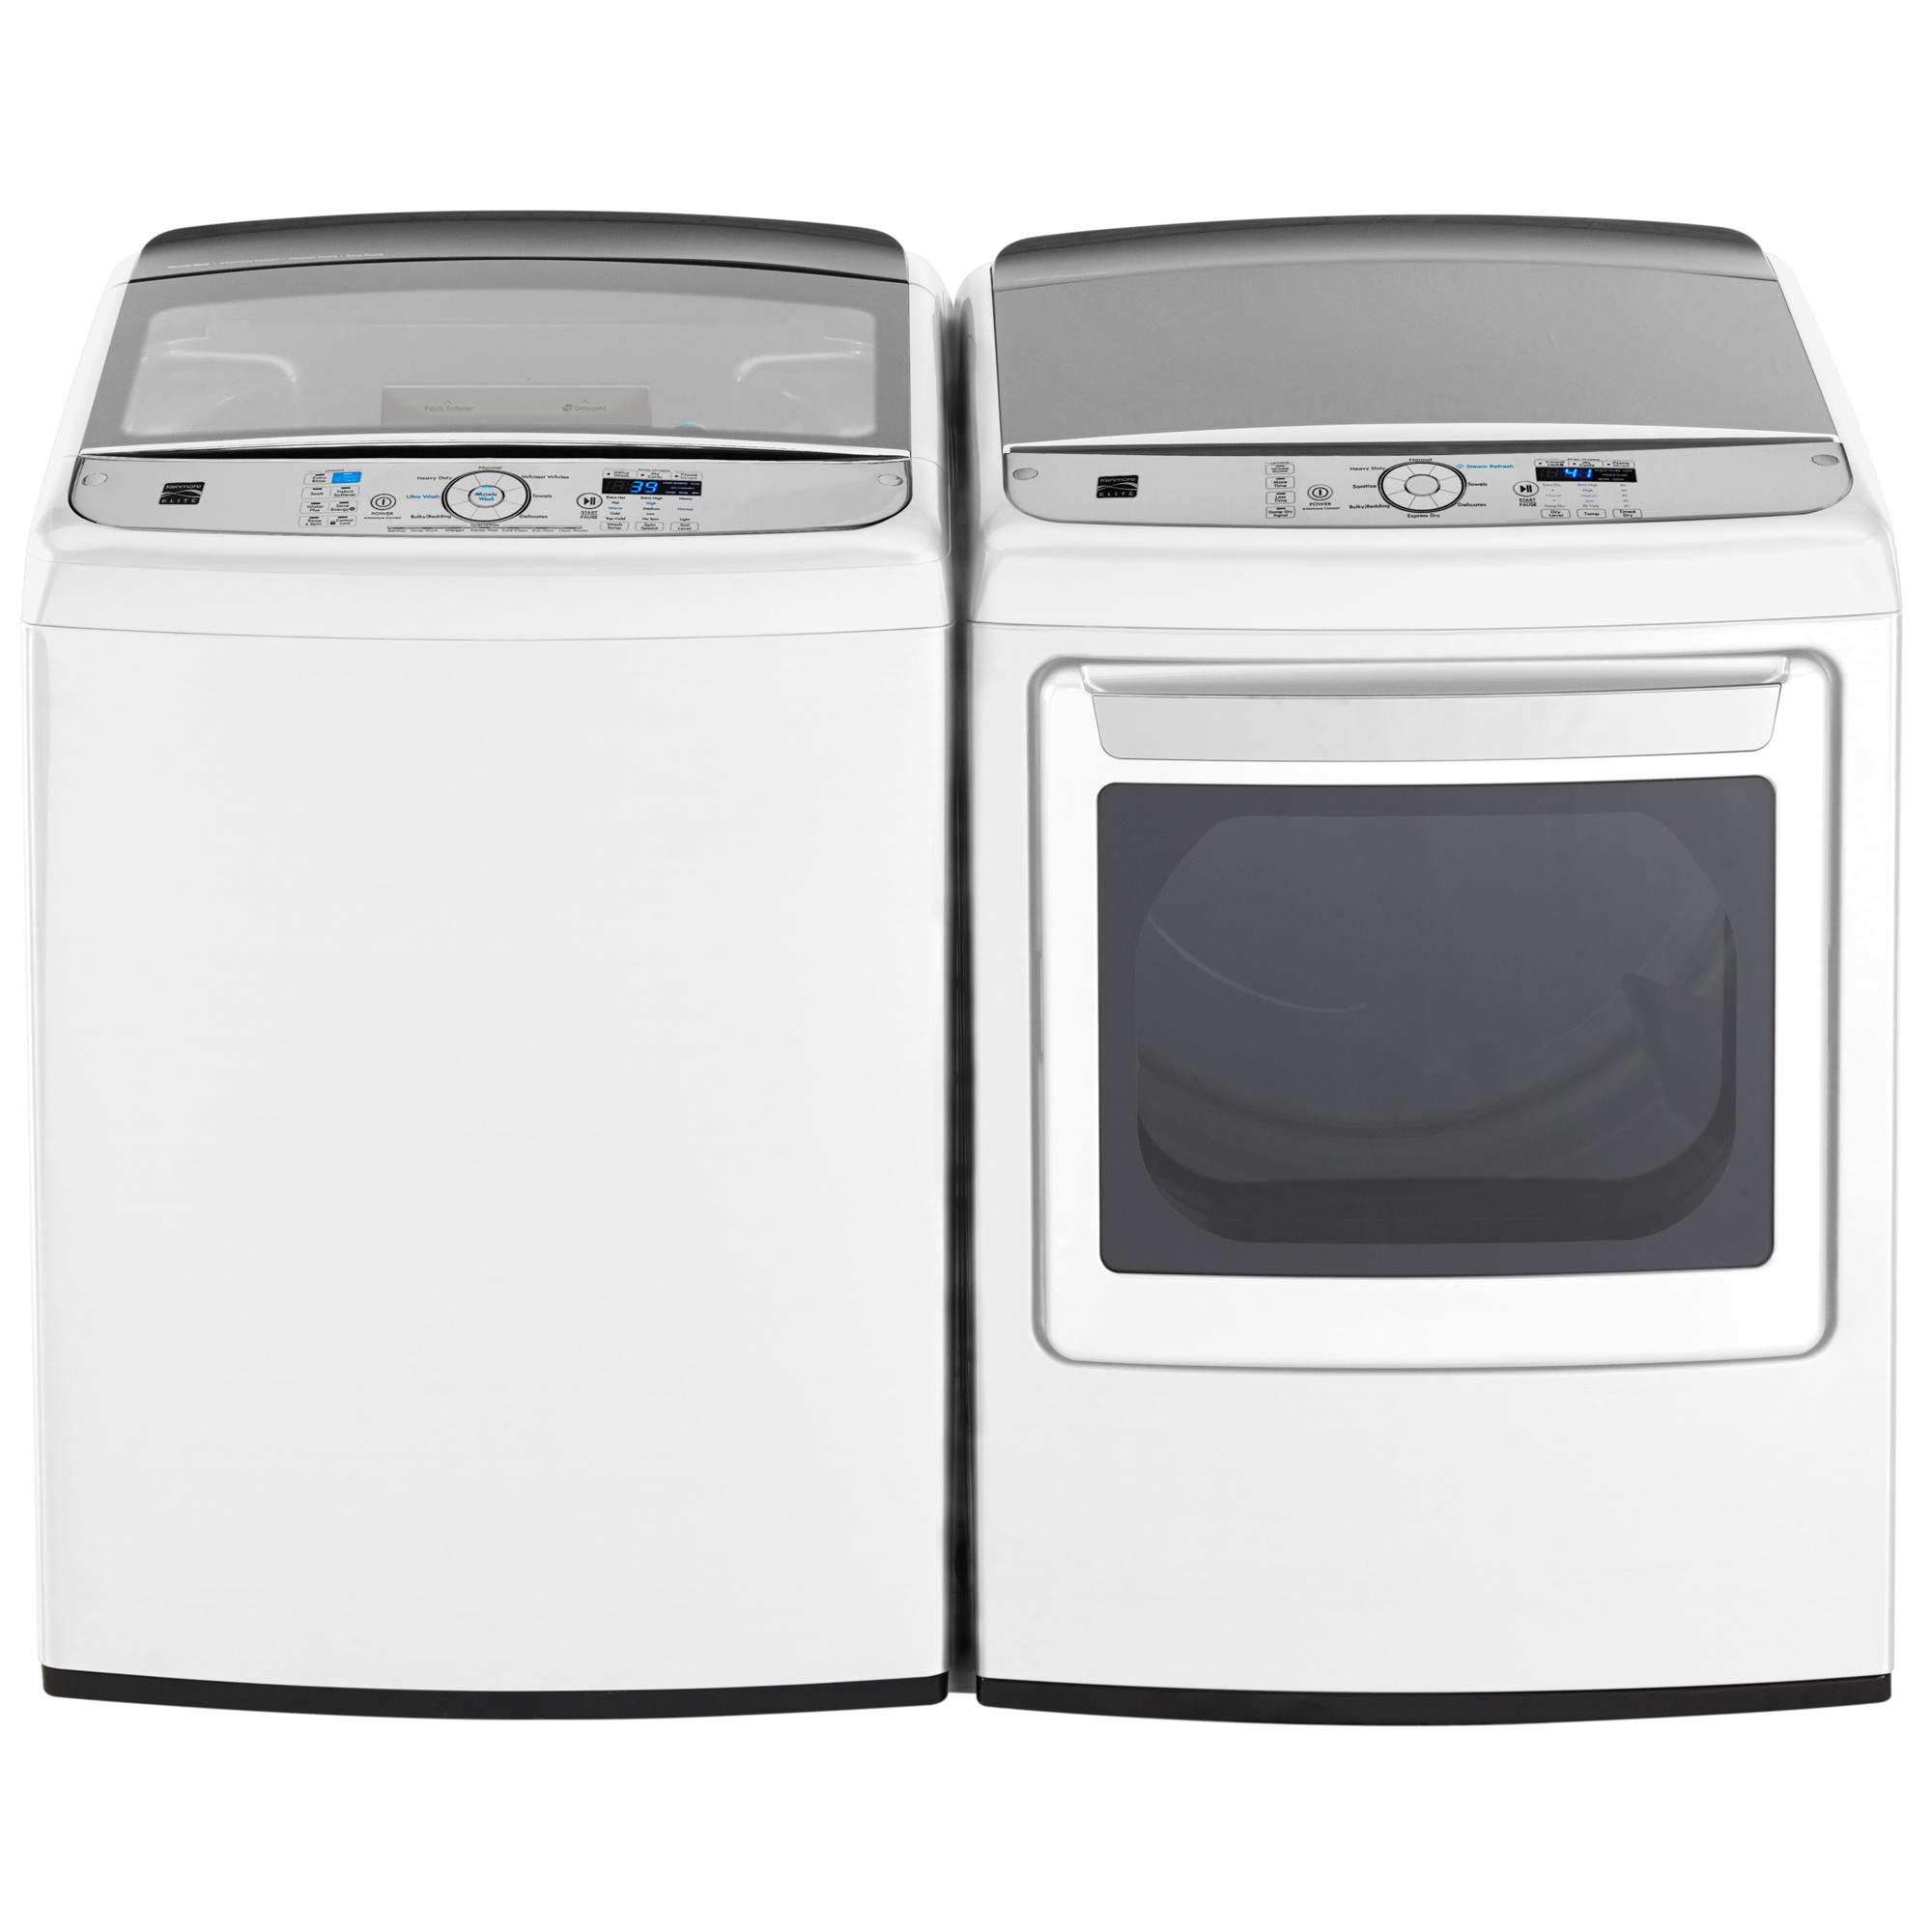 Kenmore Elite 7.3 cu. ft. Electric Dryer w/ Steam - White